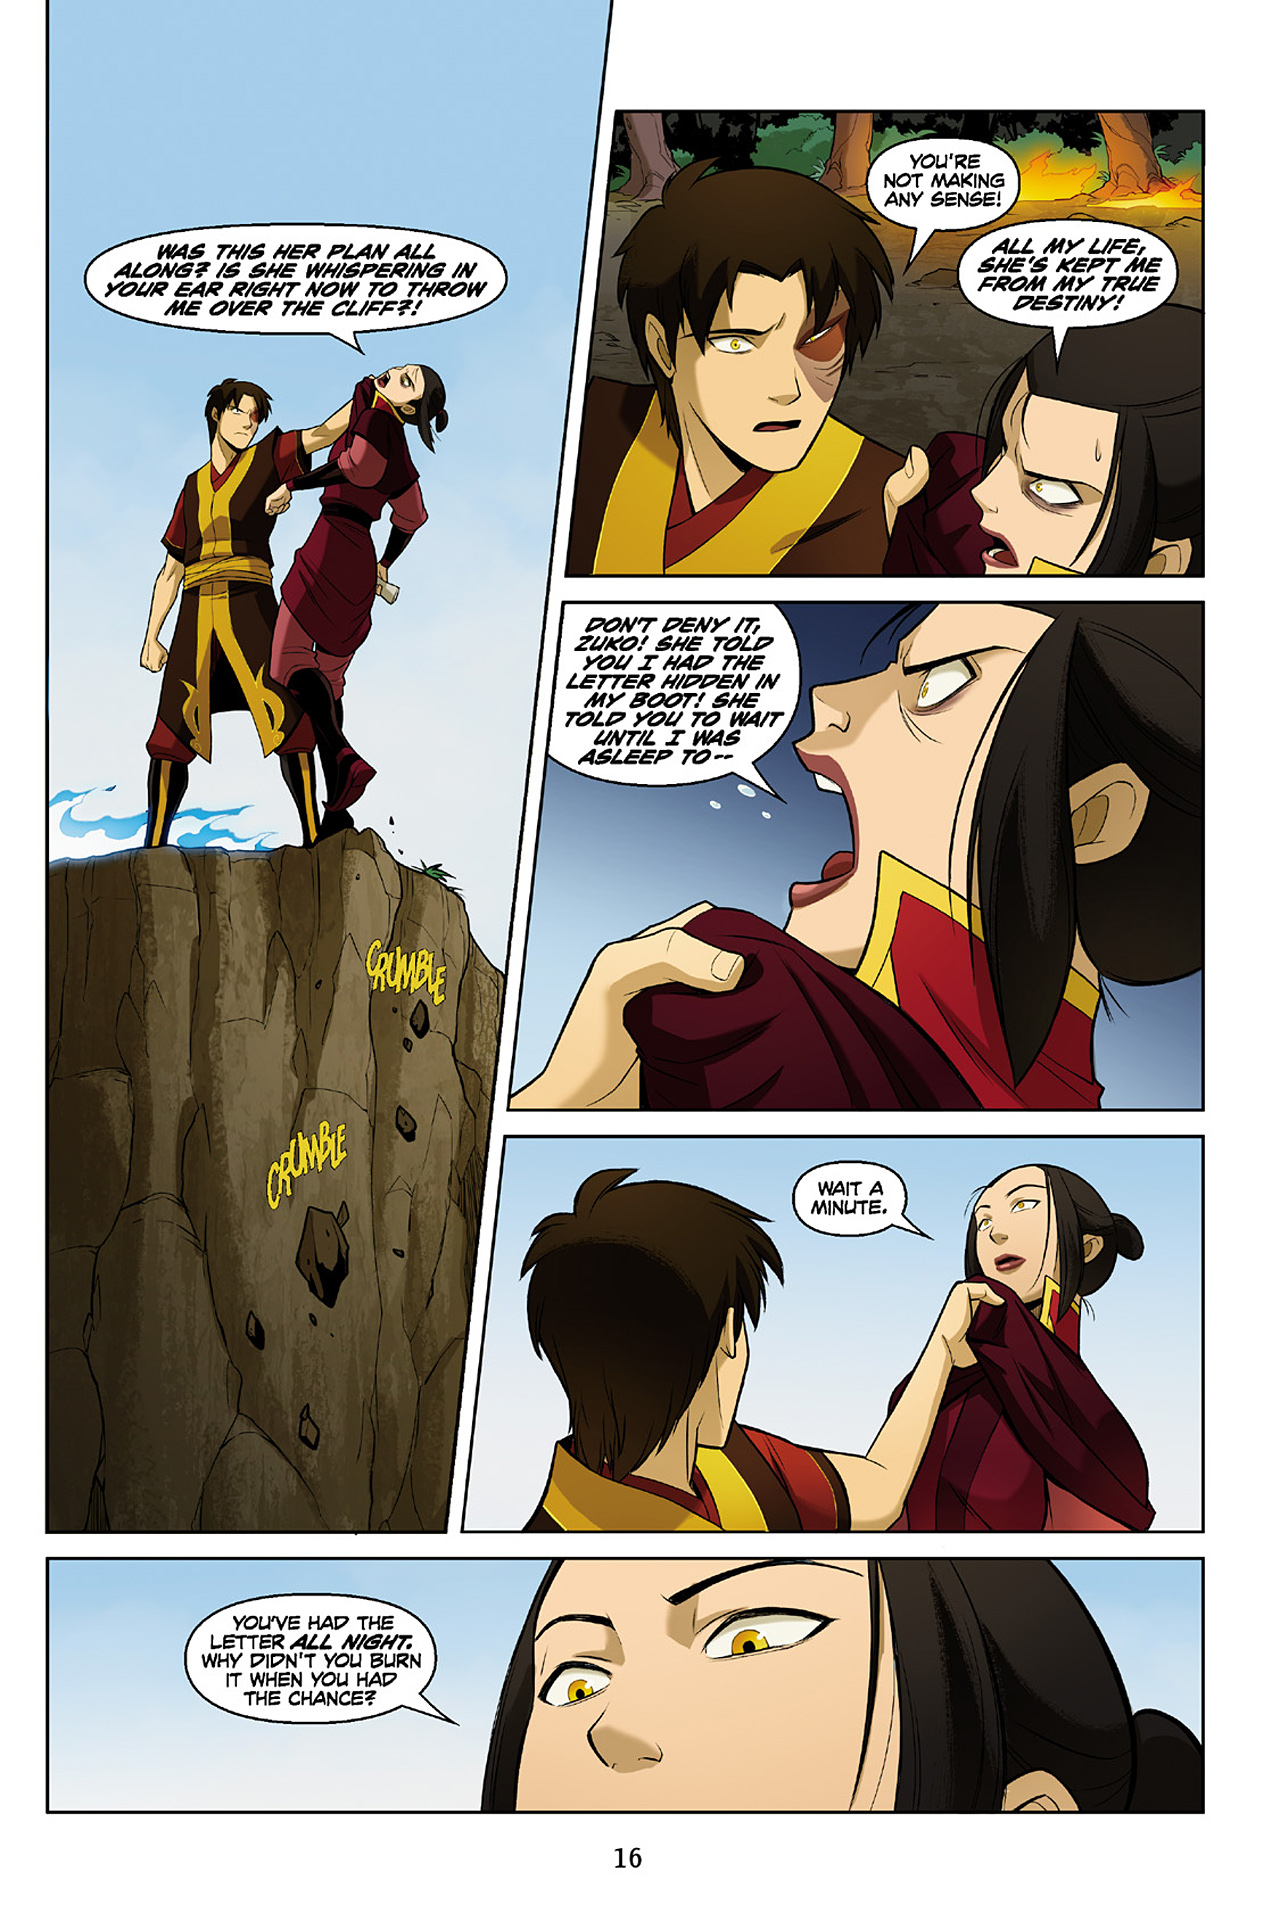 Read online Nickelodeon Avatar: The Last Airbender - The Search comic -  Issue # Part 2 - 17